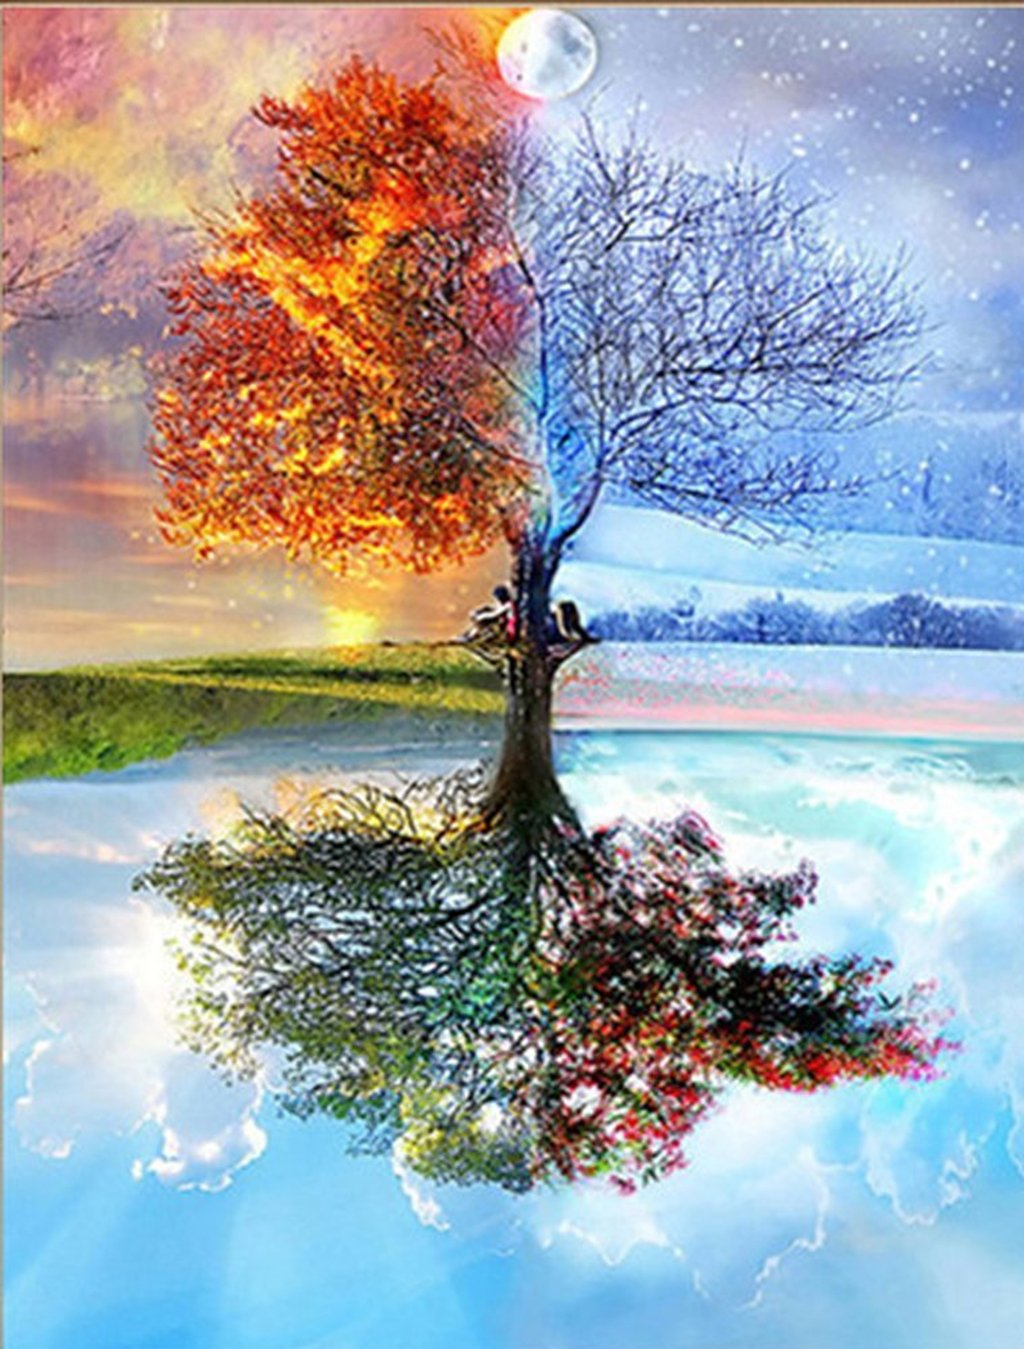 AIRDEA DIY 5D Diamond Painting Kit, Crystal Embroidery Cross Stitch Magic Tree Reflection Arts Craft for Canvas Wall Decor